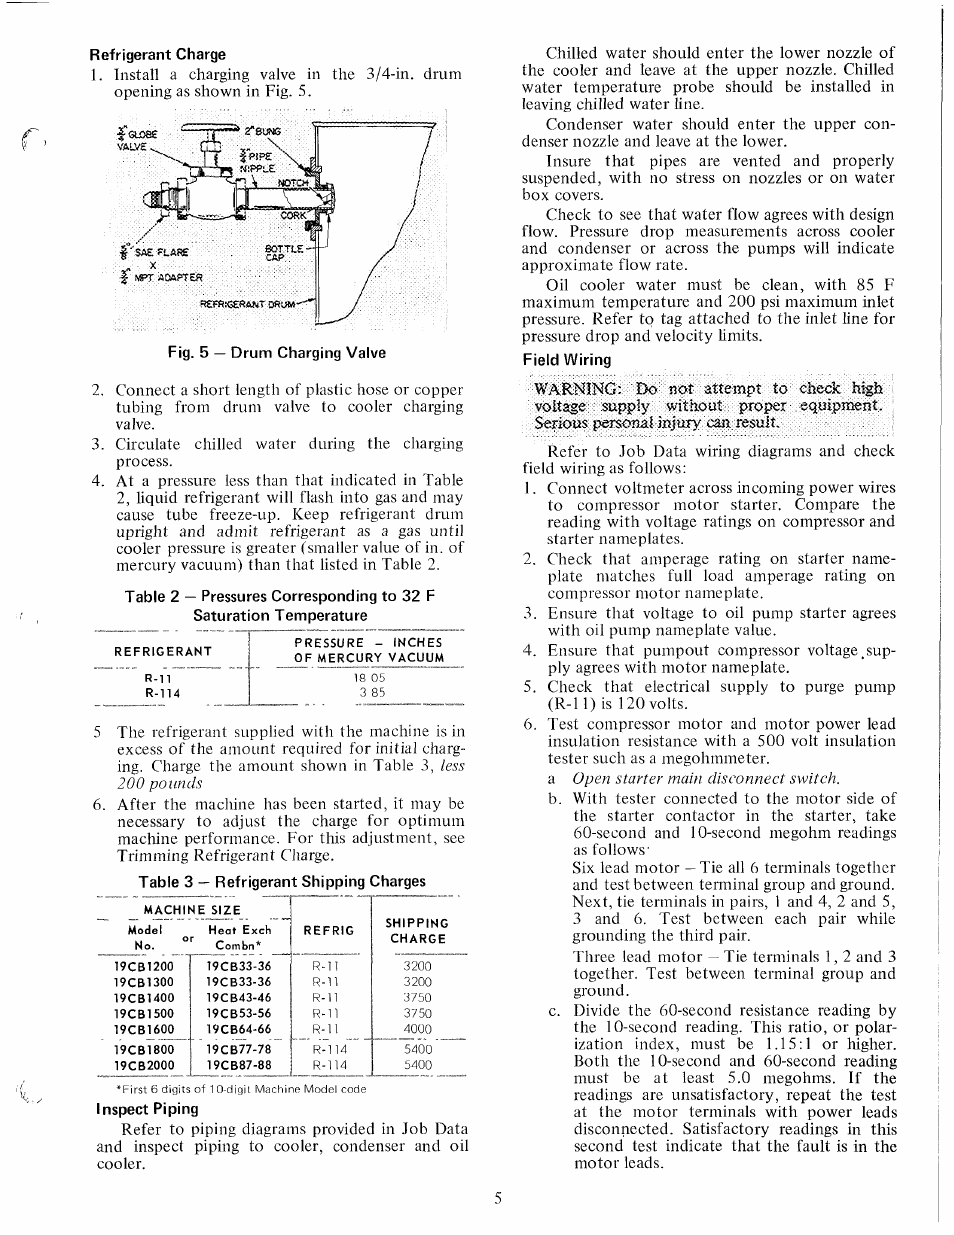 Refrigerant Charge Carrier 19cb User Manual Page 5 12 Piping Diagram Refrigeration